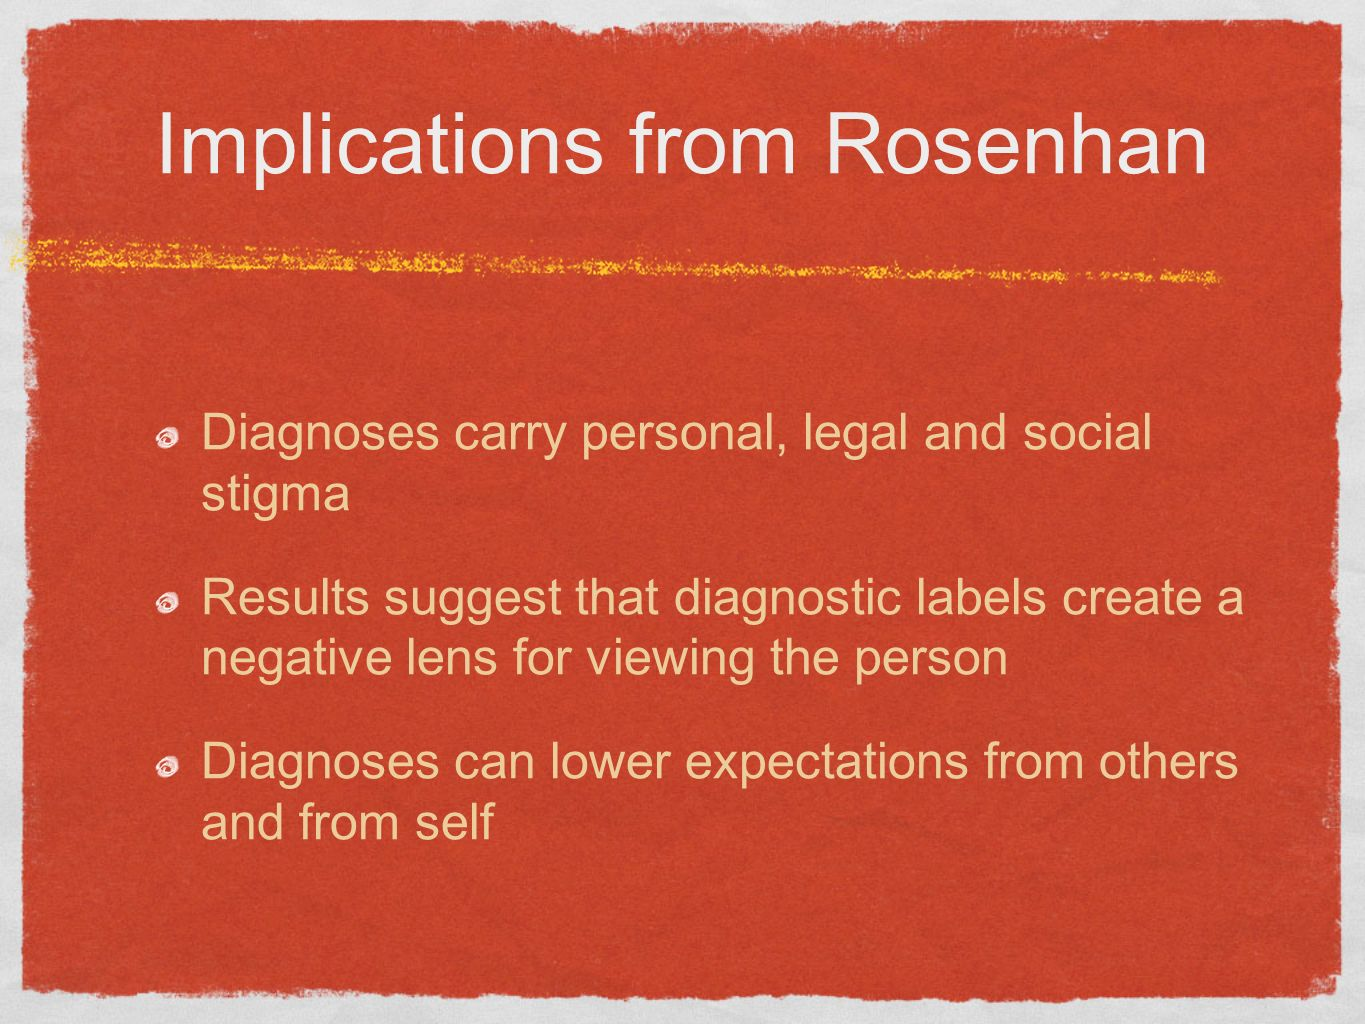 Implications from Rosenhan